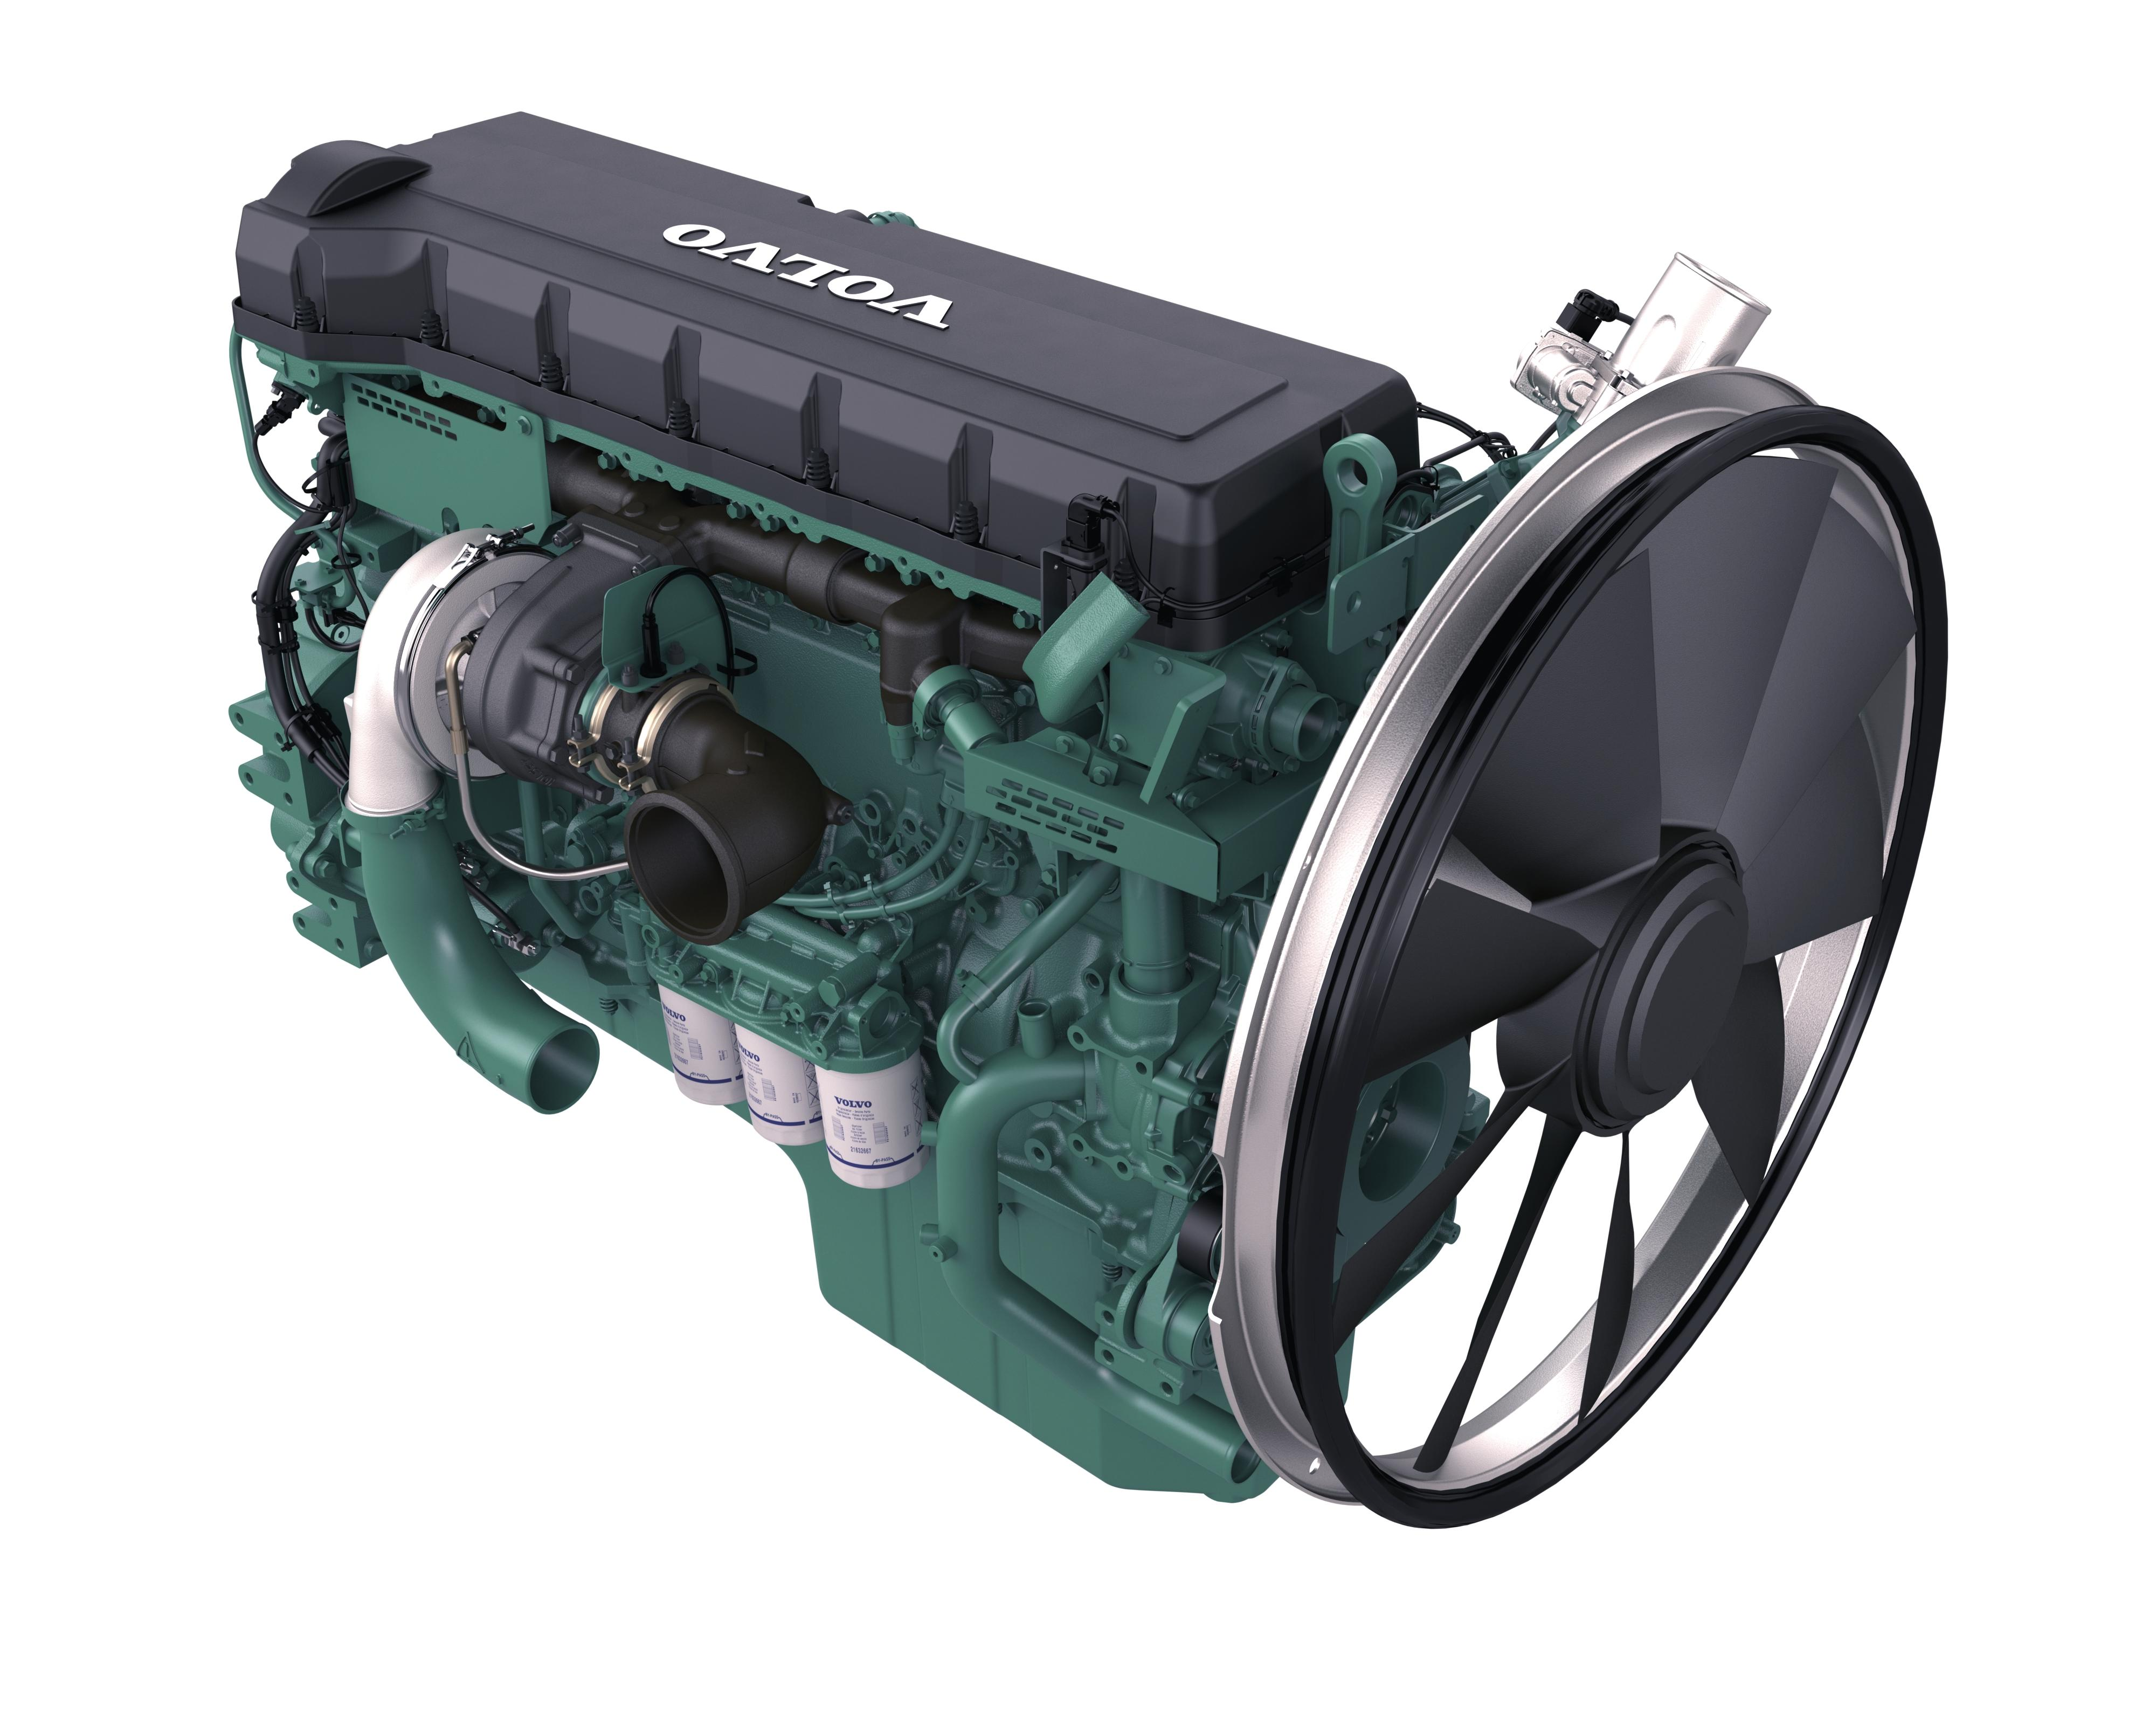 Volvo Penta's D16 engine for Stage IV within Europe